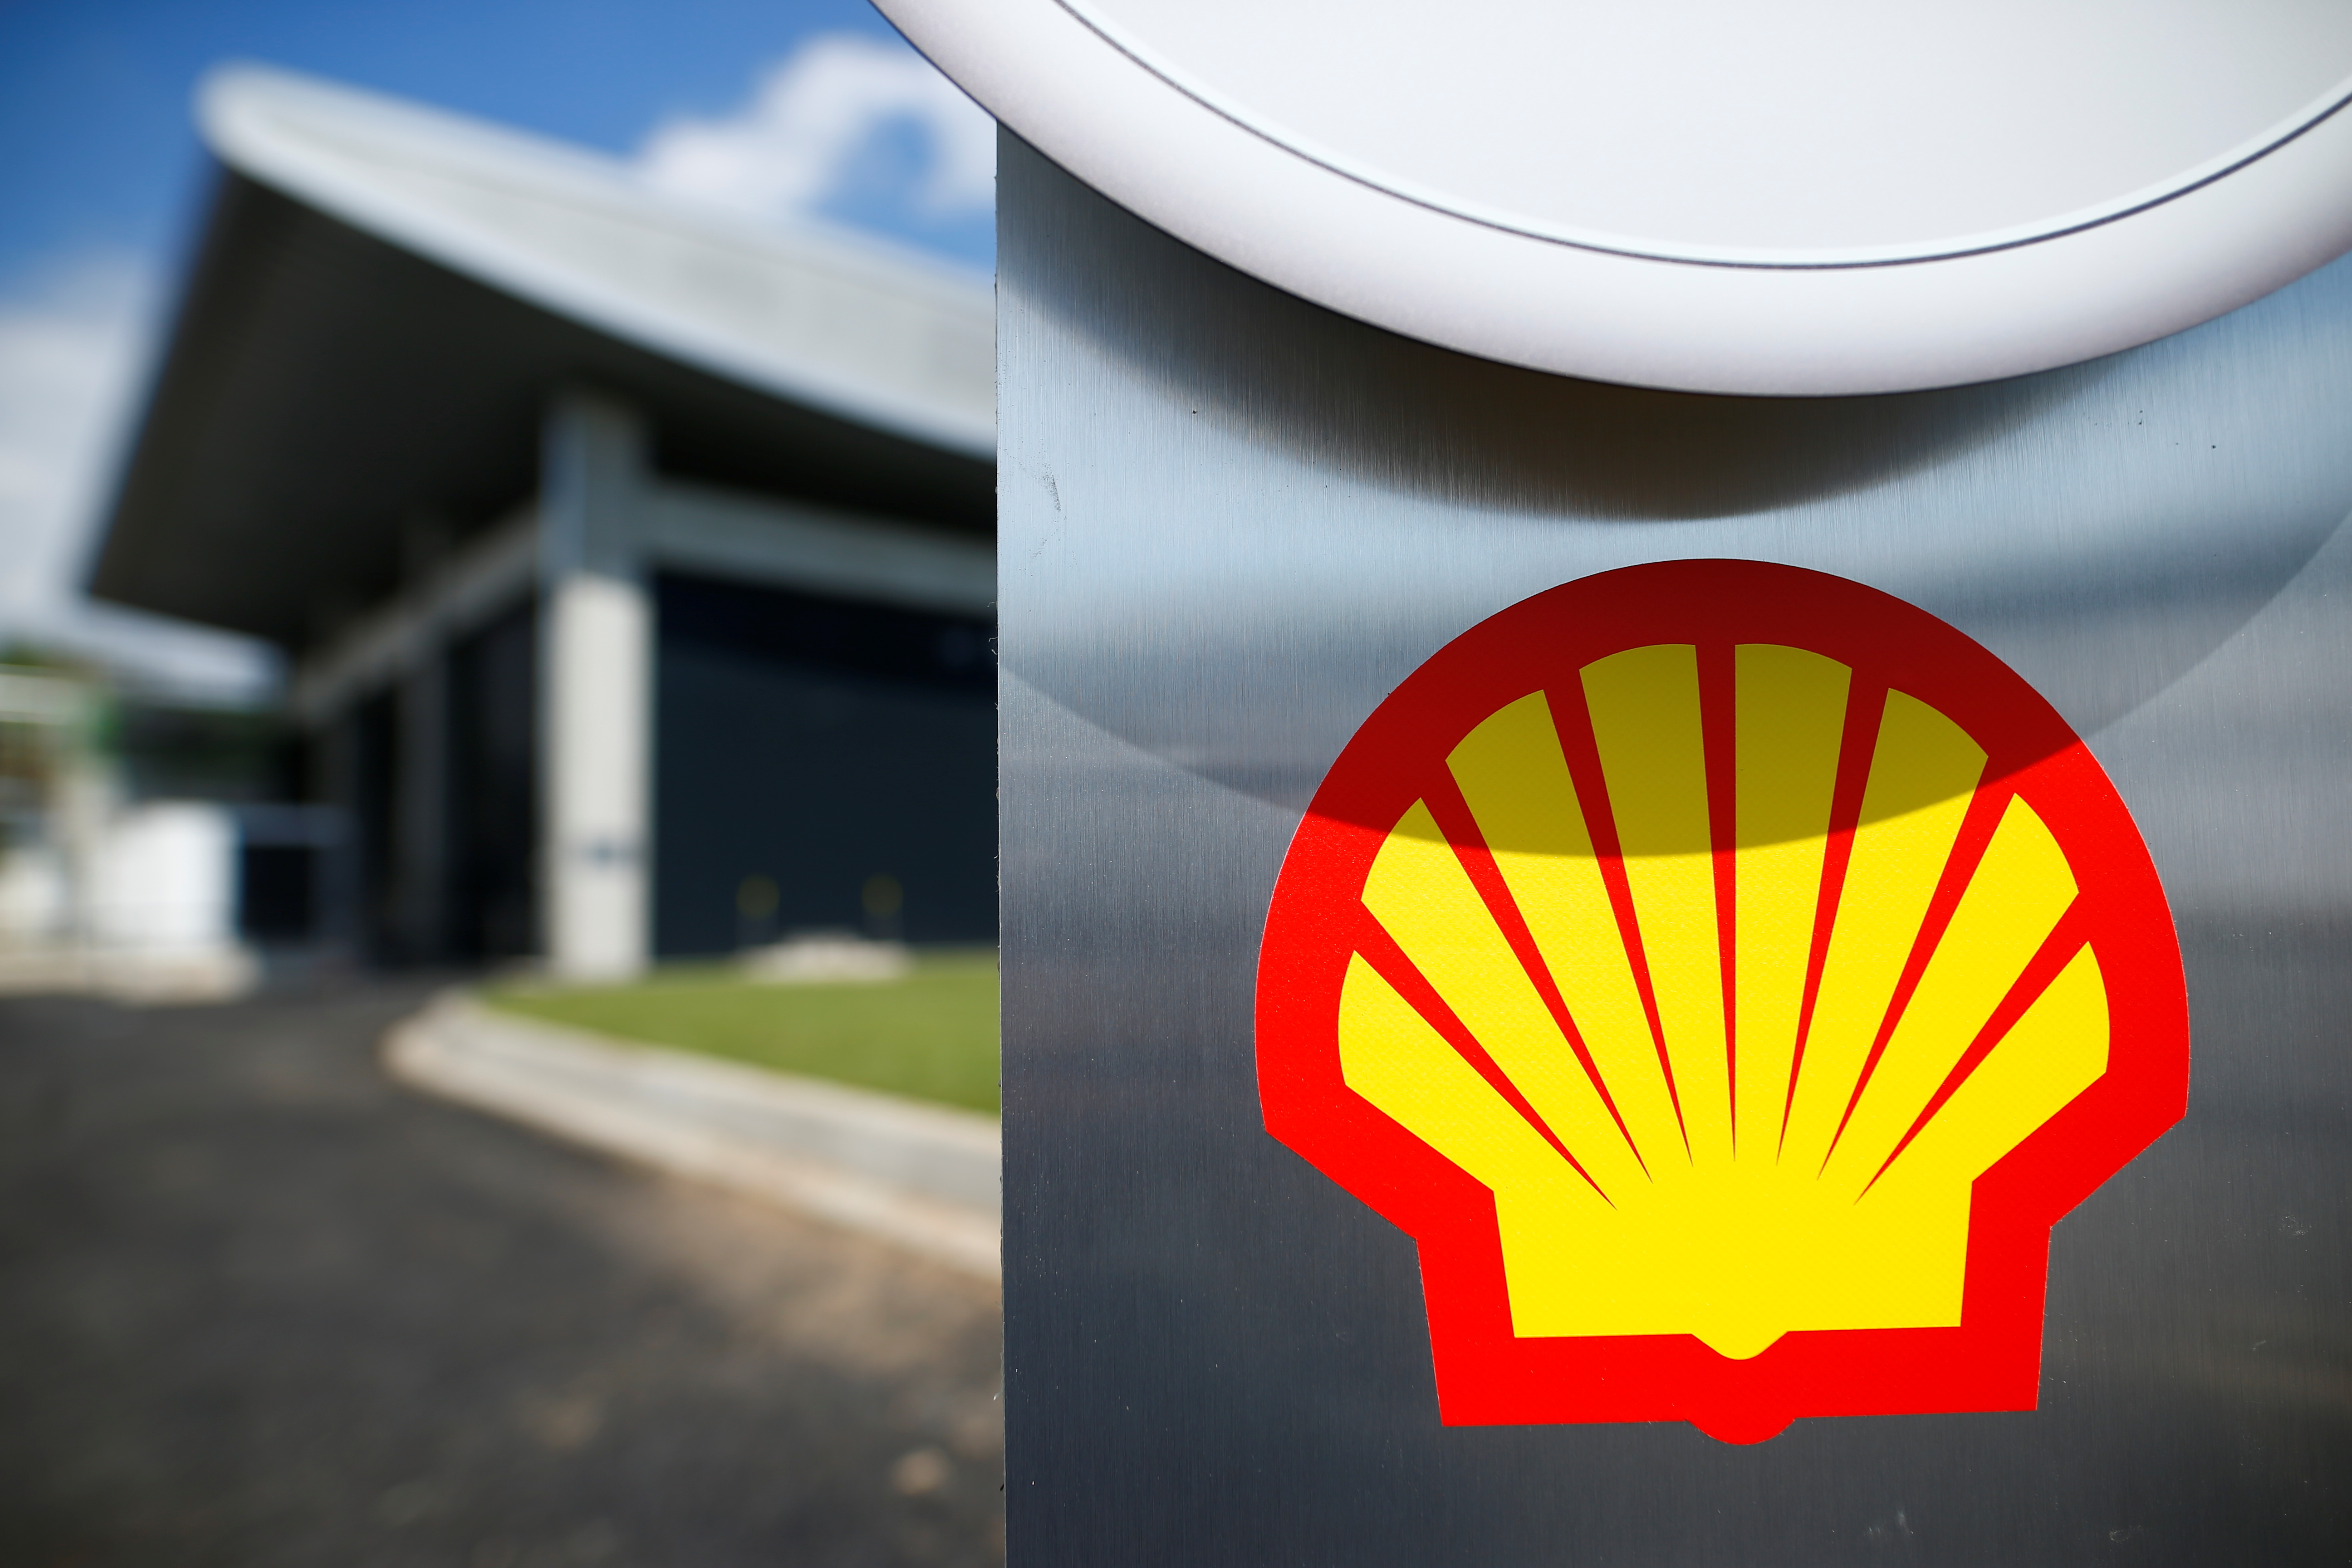 The logo of Royal Dutch Shell is pictured during a launch event for a hydrogen electrolysis plant at Shell's Rhineland refinery in Wesseling near Cologne, Germany, July 2, 2021. REUTERS/Thilo Schmuelgen